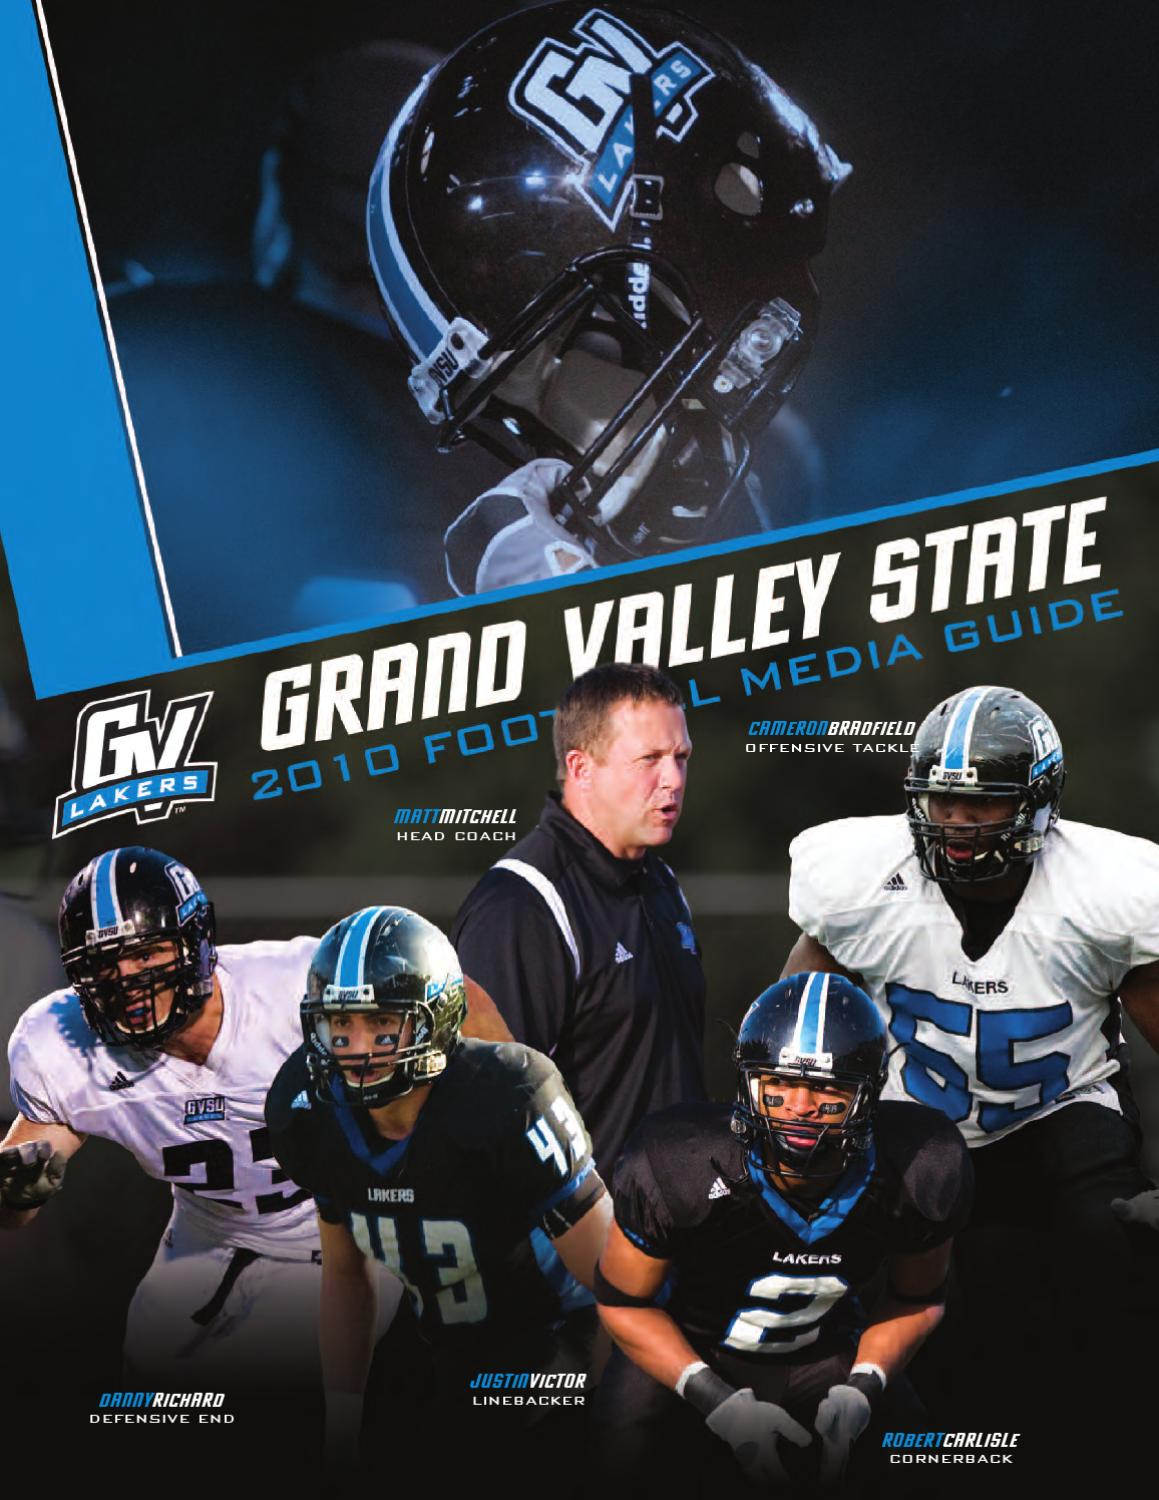 GVSU Football Media Guide by Grand Valley State Lakers - issuu